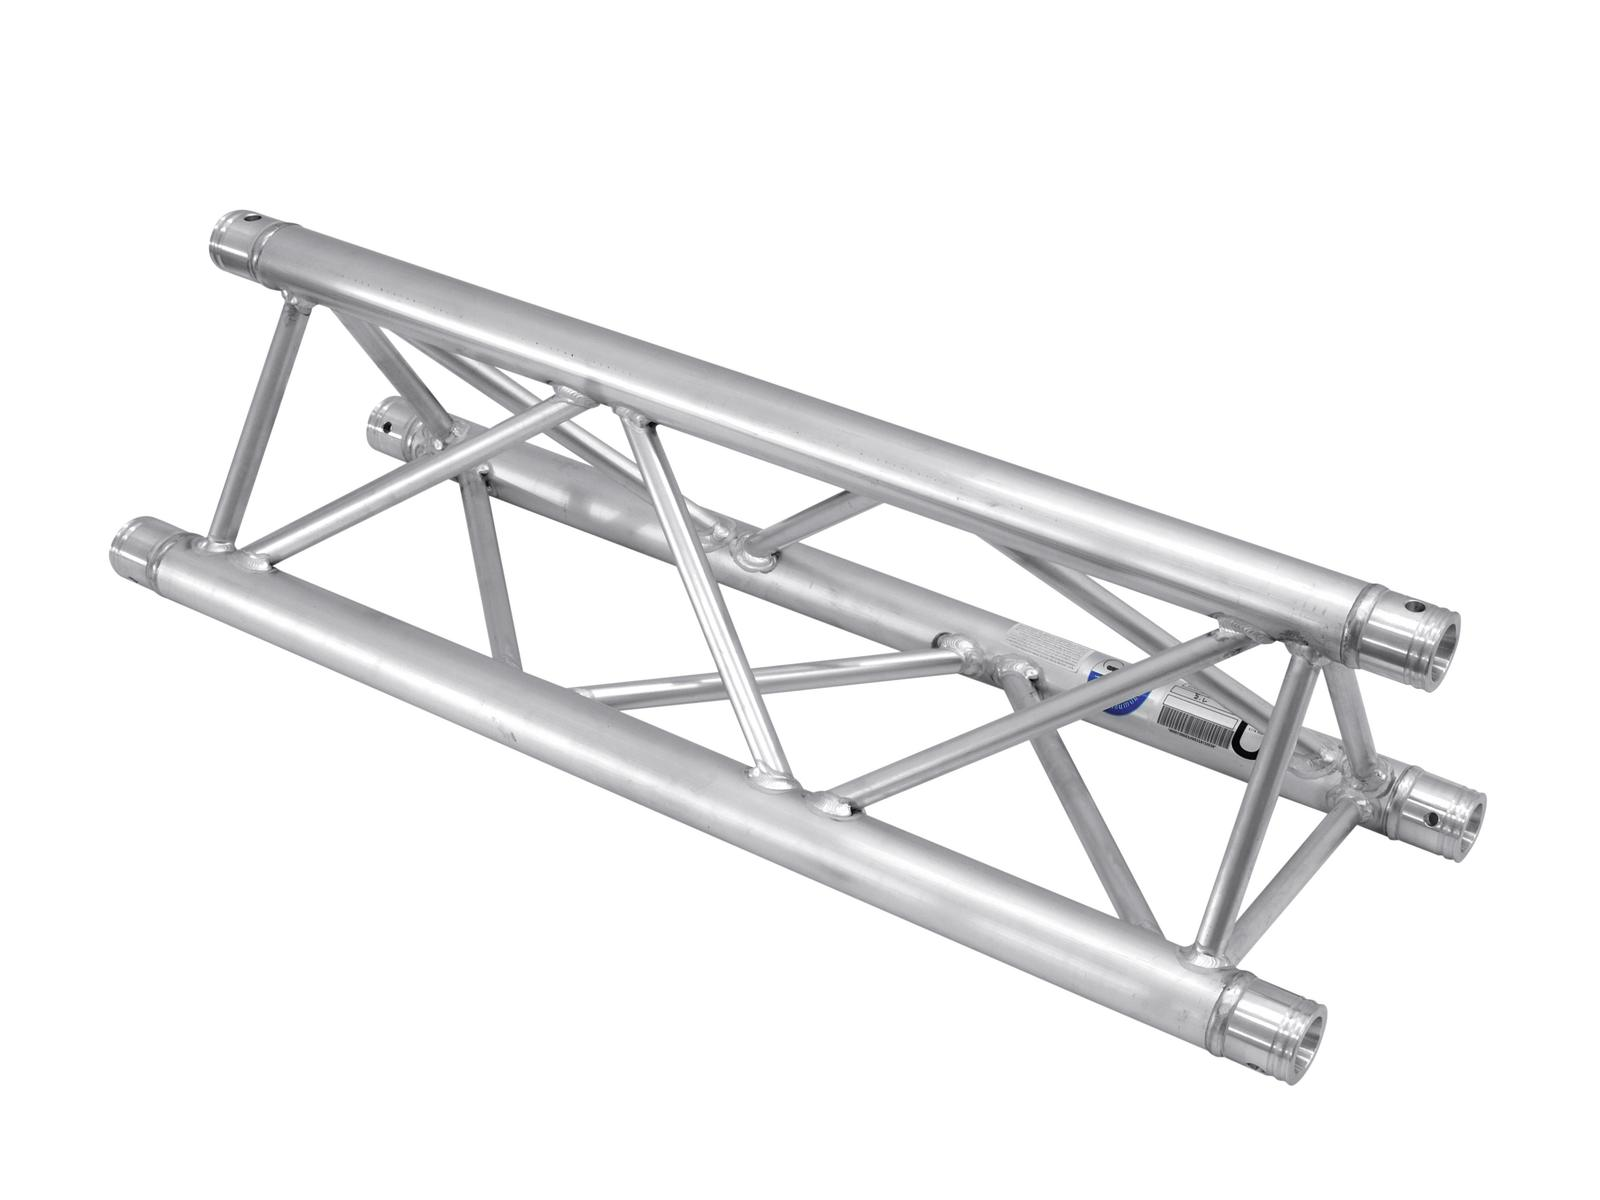 ALUTRUSS TRILOCK E-GL33 3500 a 3 vie traverse